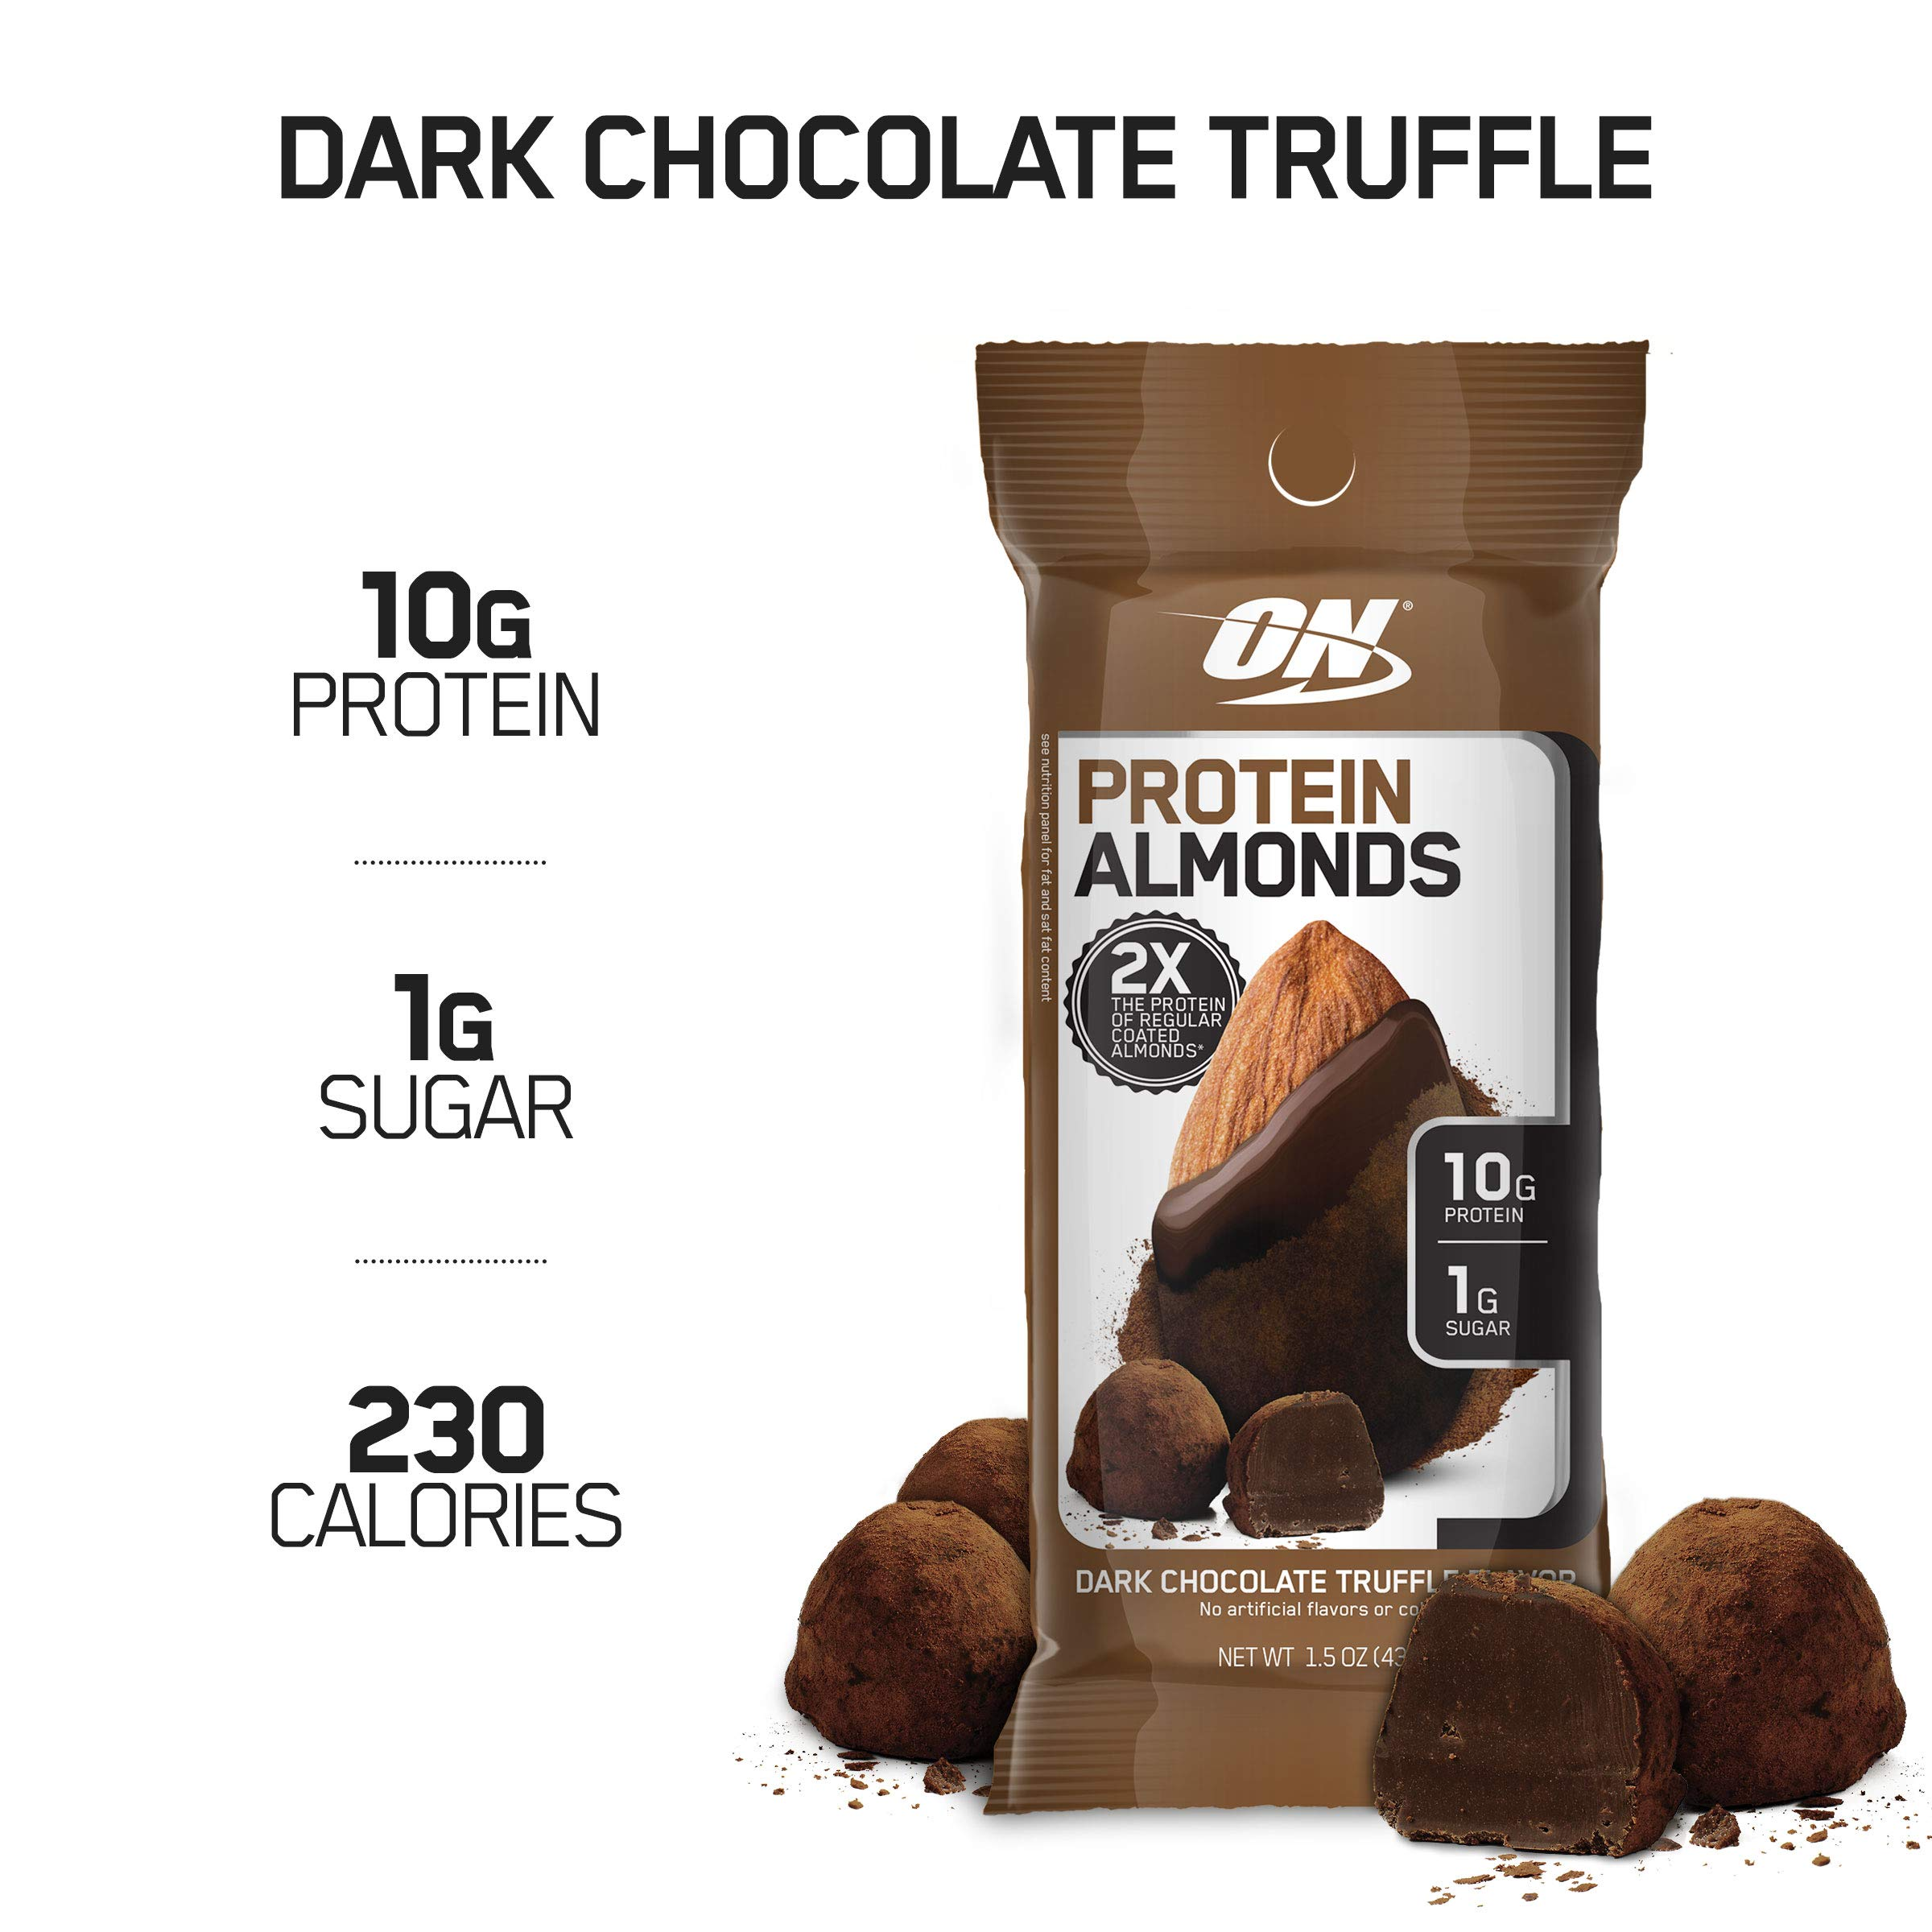 Optimum Nutrition Protein Almonds Snacks, On The Go Nutrition, Flavor: Dark Chocolate Truffle, Low Sugar, Made with Whey Protein Isolate, 12 Count by Optimum Nutrition